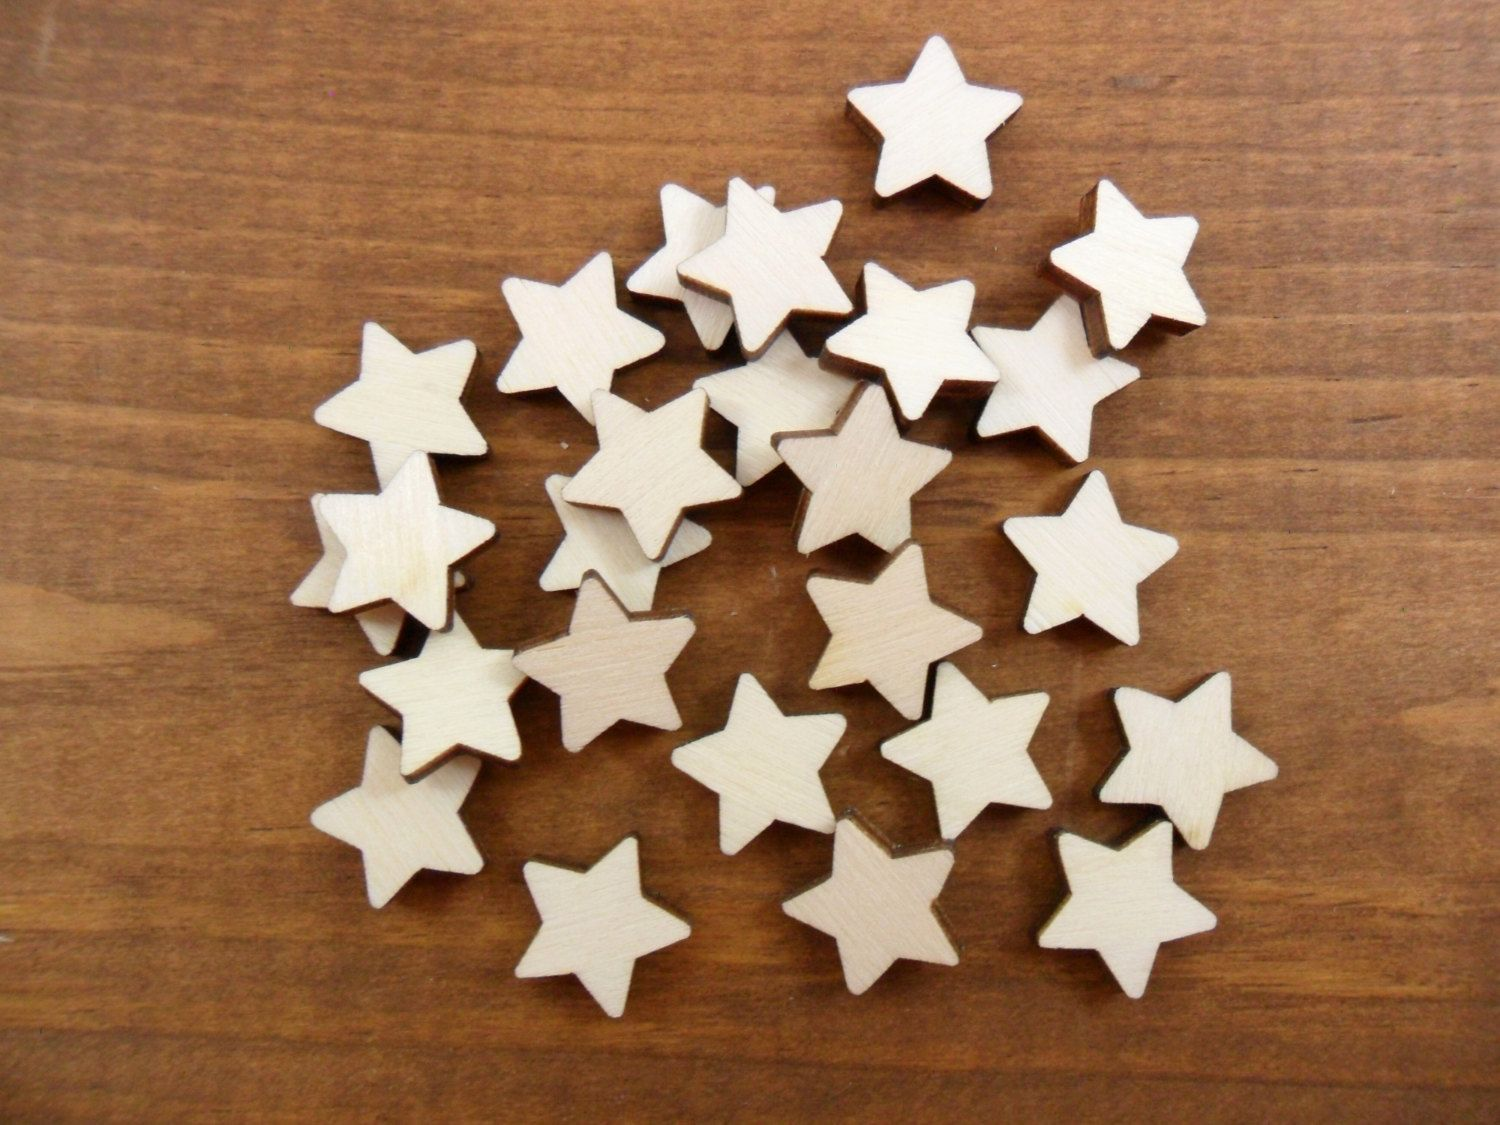 "50 Wood Stars 1/2"" Unfinished Laser Cut Wood Star Stud Earring Shapes"